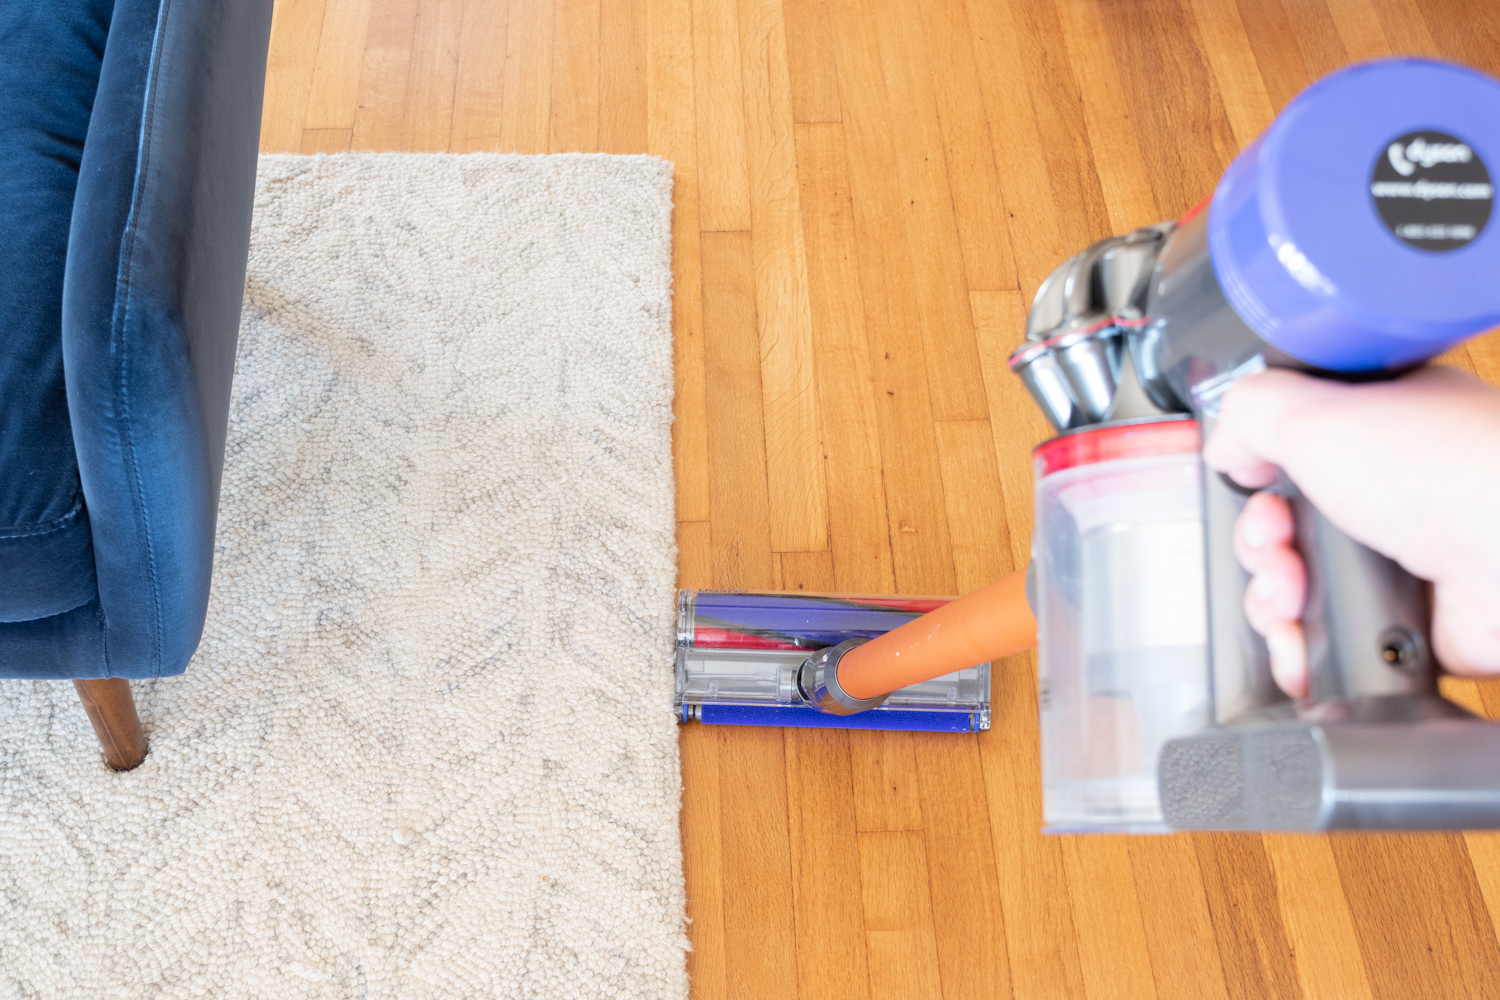 The Gold Hive Dyson V8 Review